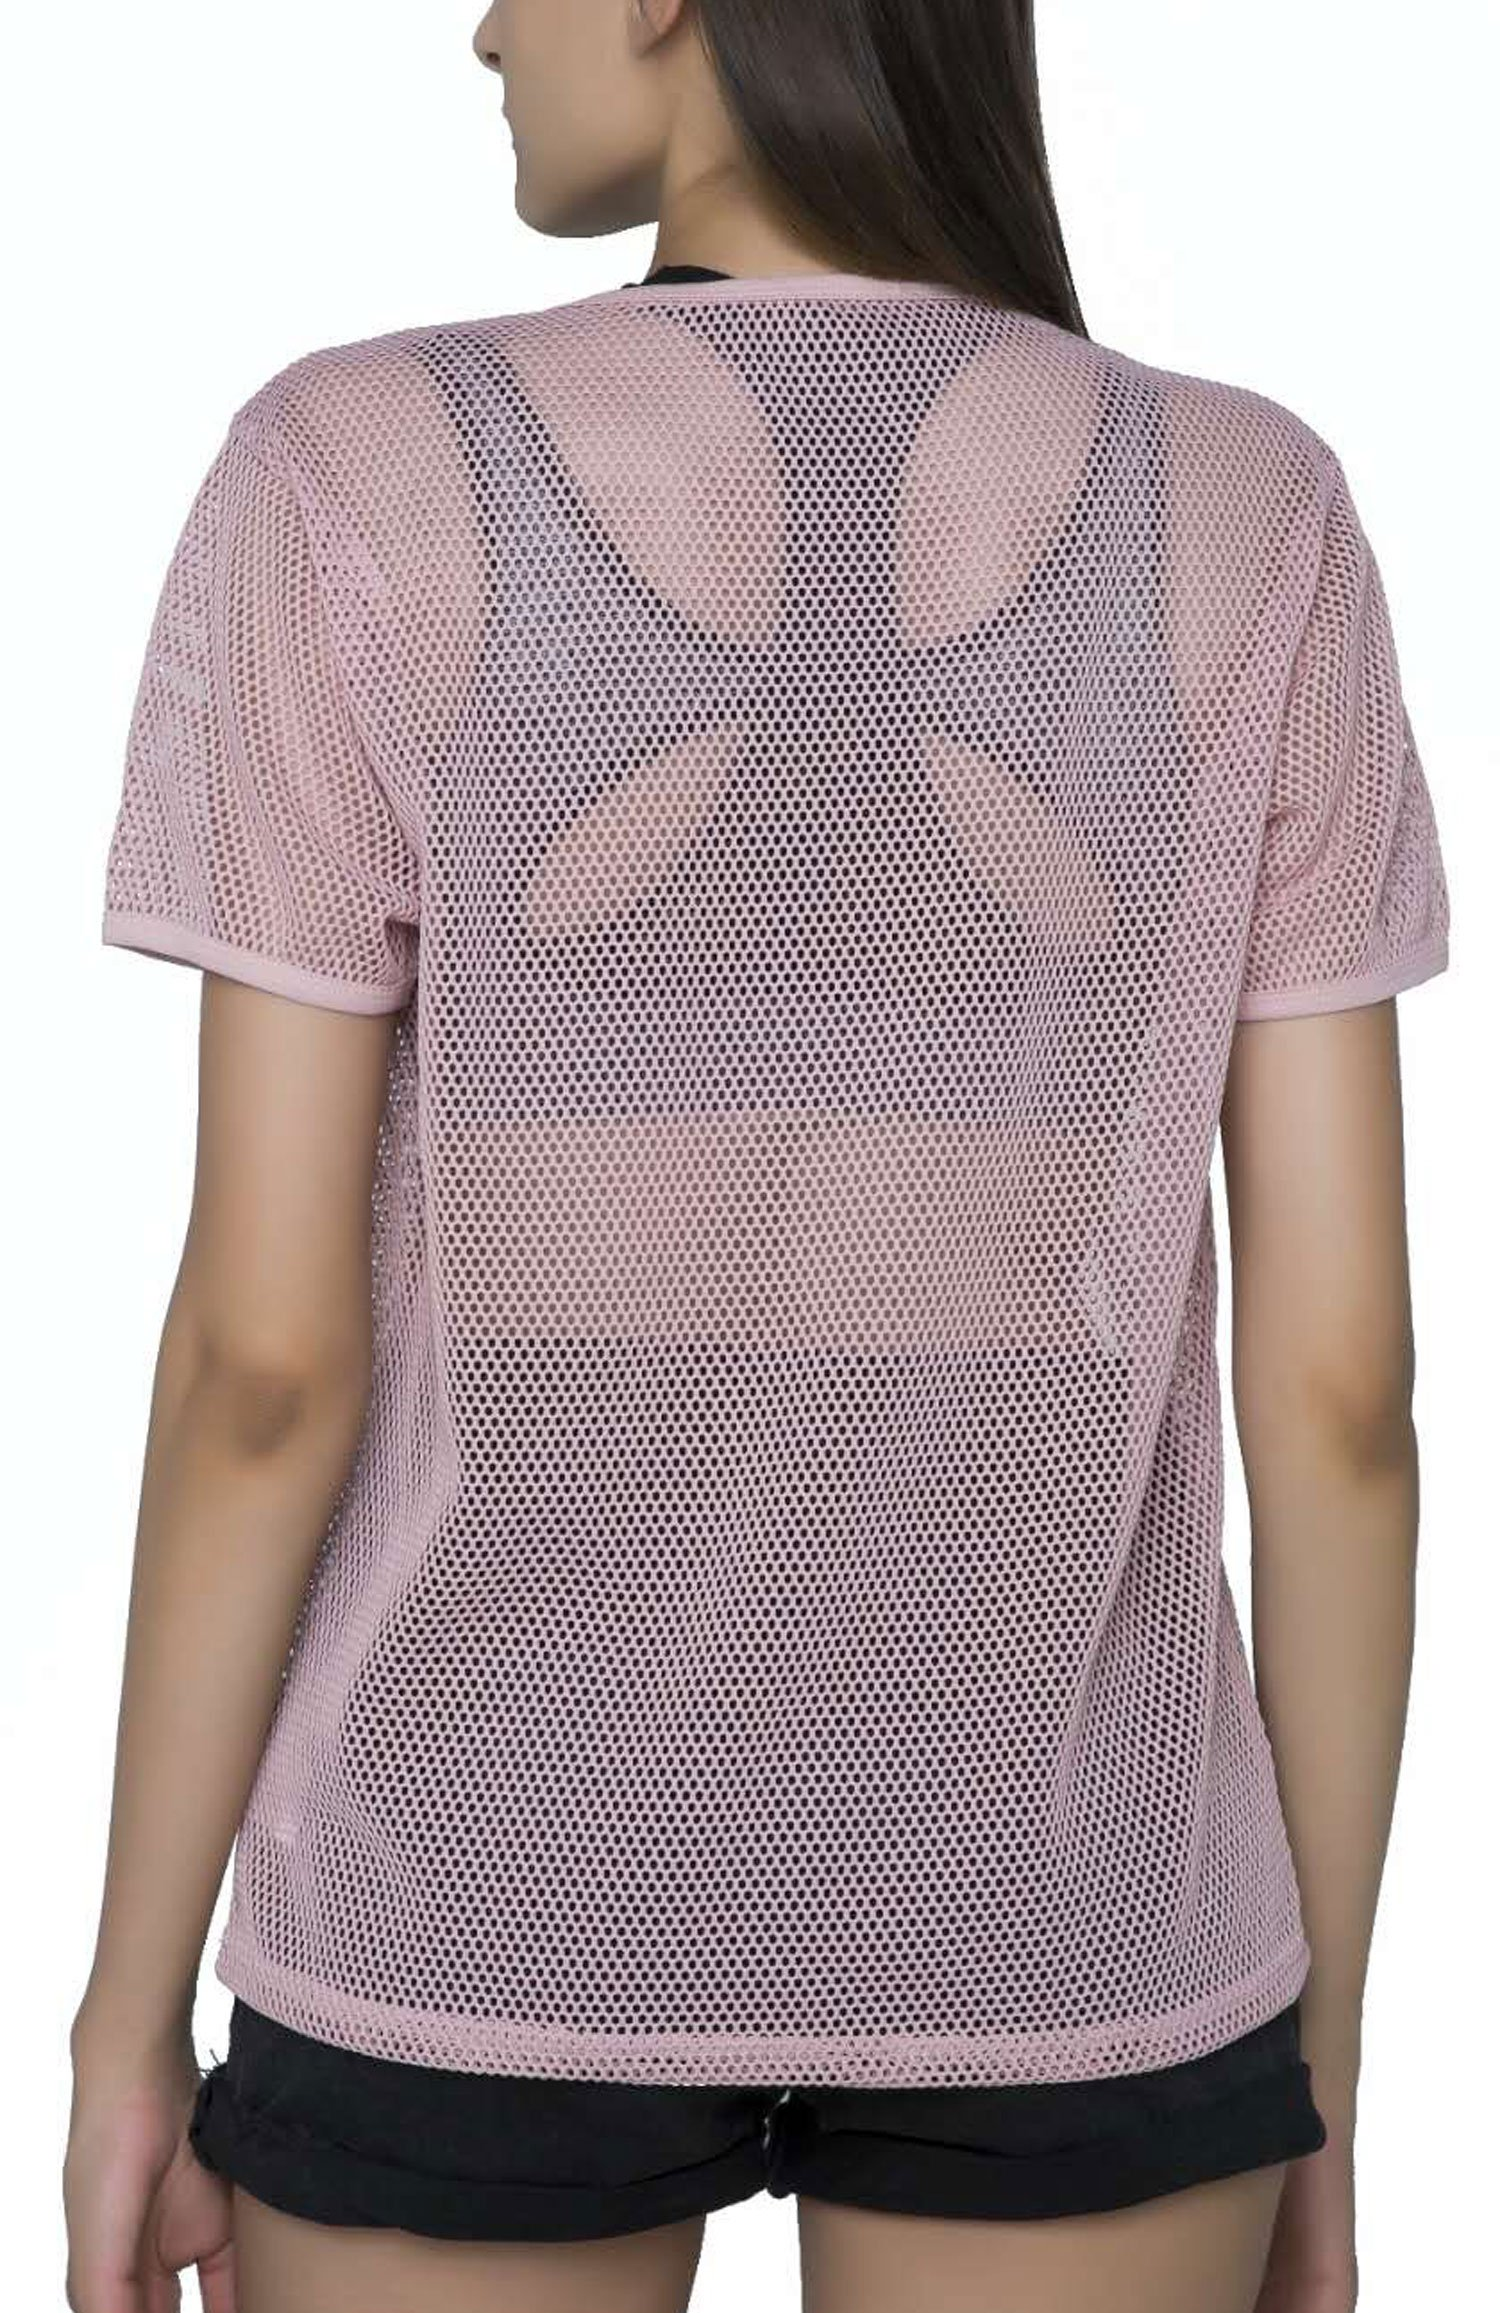 SPECIALMAGIC Fashion Short Sleeve See Through Sheer Mesh T Shirt Top Pink S